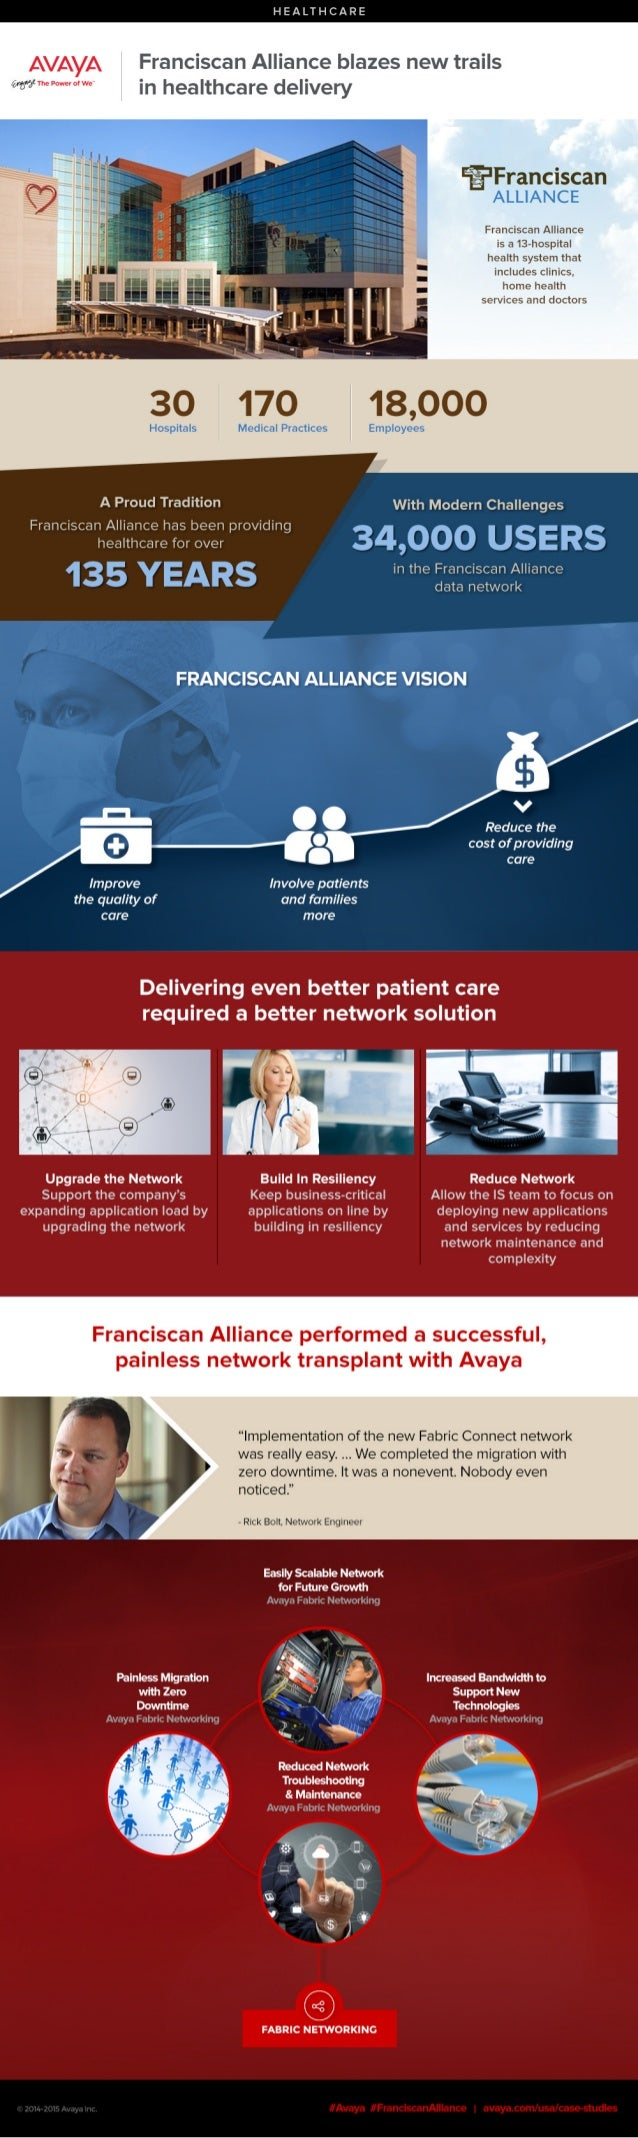 HEALTHCARE  Franciscan Alliance blazes new trails in healthcare delivery  %Franciscan ALLIANCE  Franciscan Alliance is a 1...